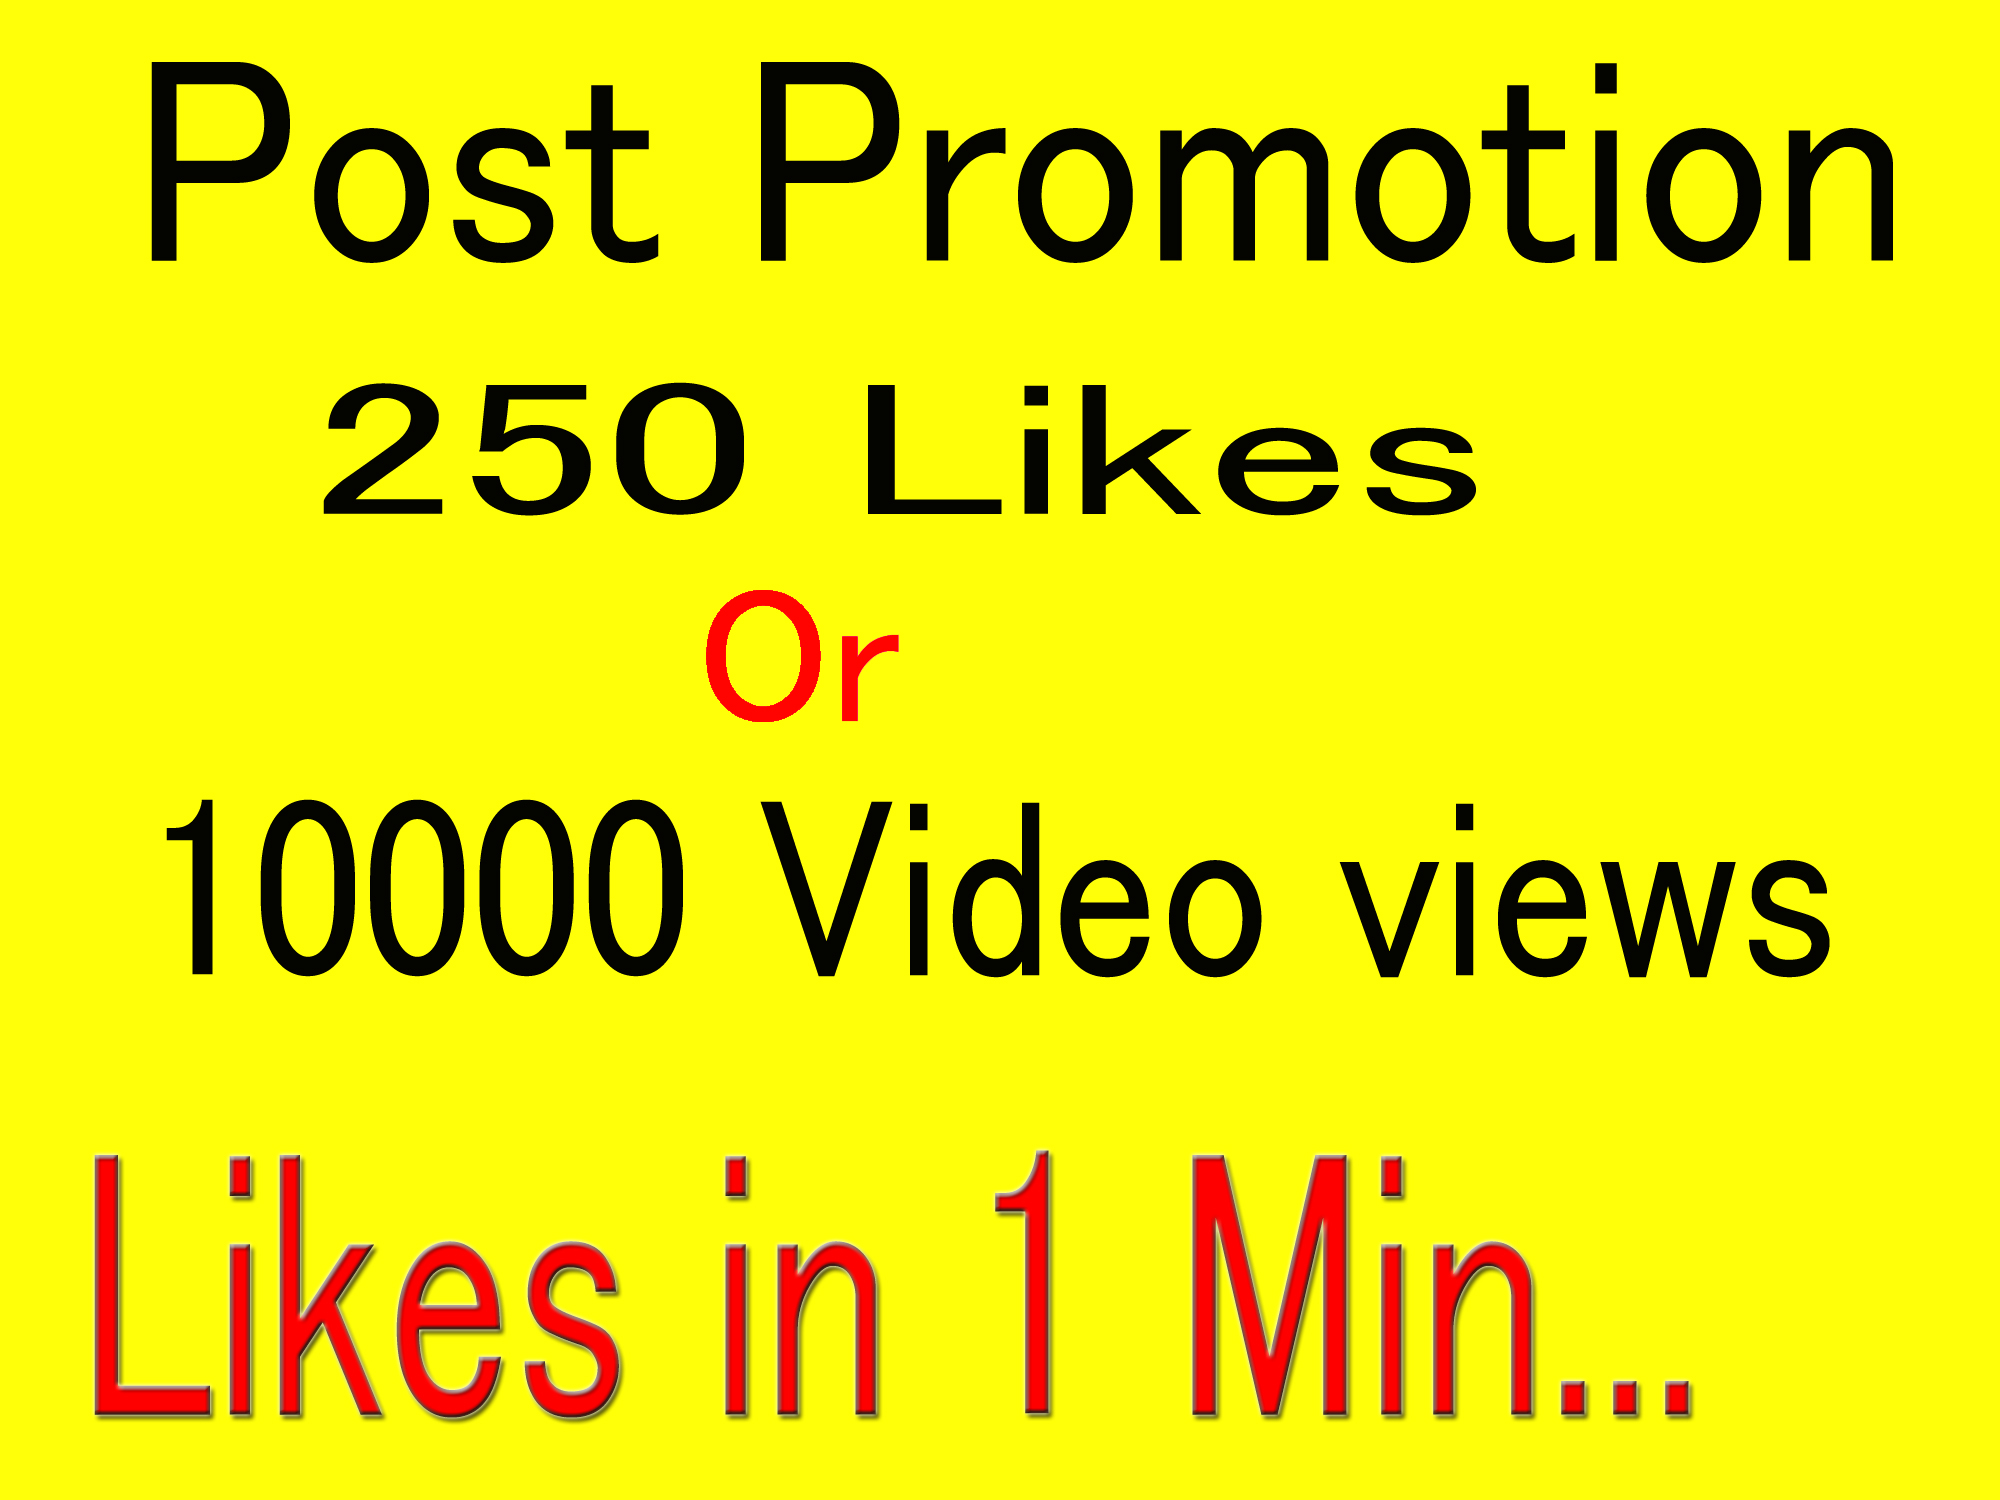 Super Instant 250+ Likes In Pic Or 10,000 Video Views Social media Marketing delivery in 1 min